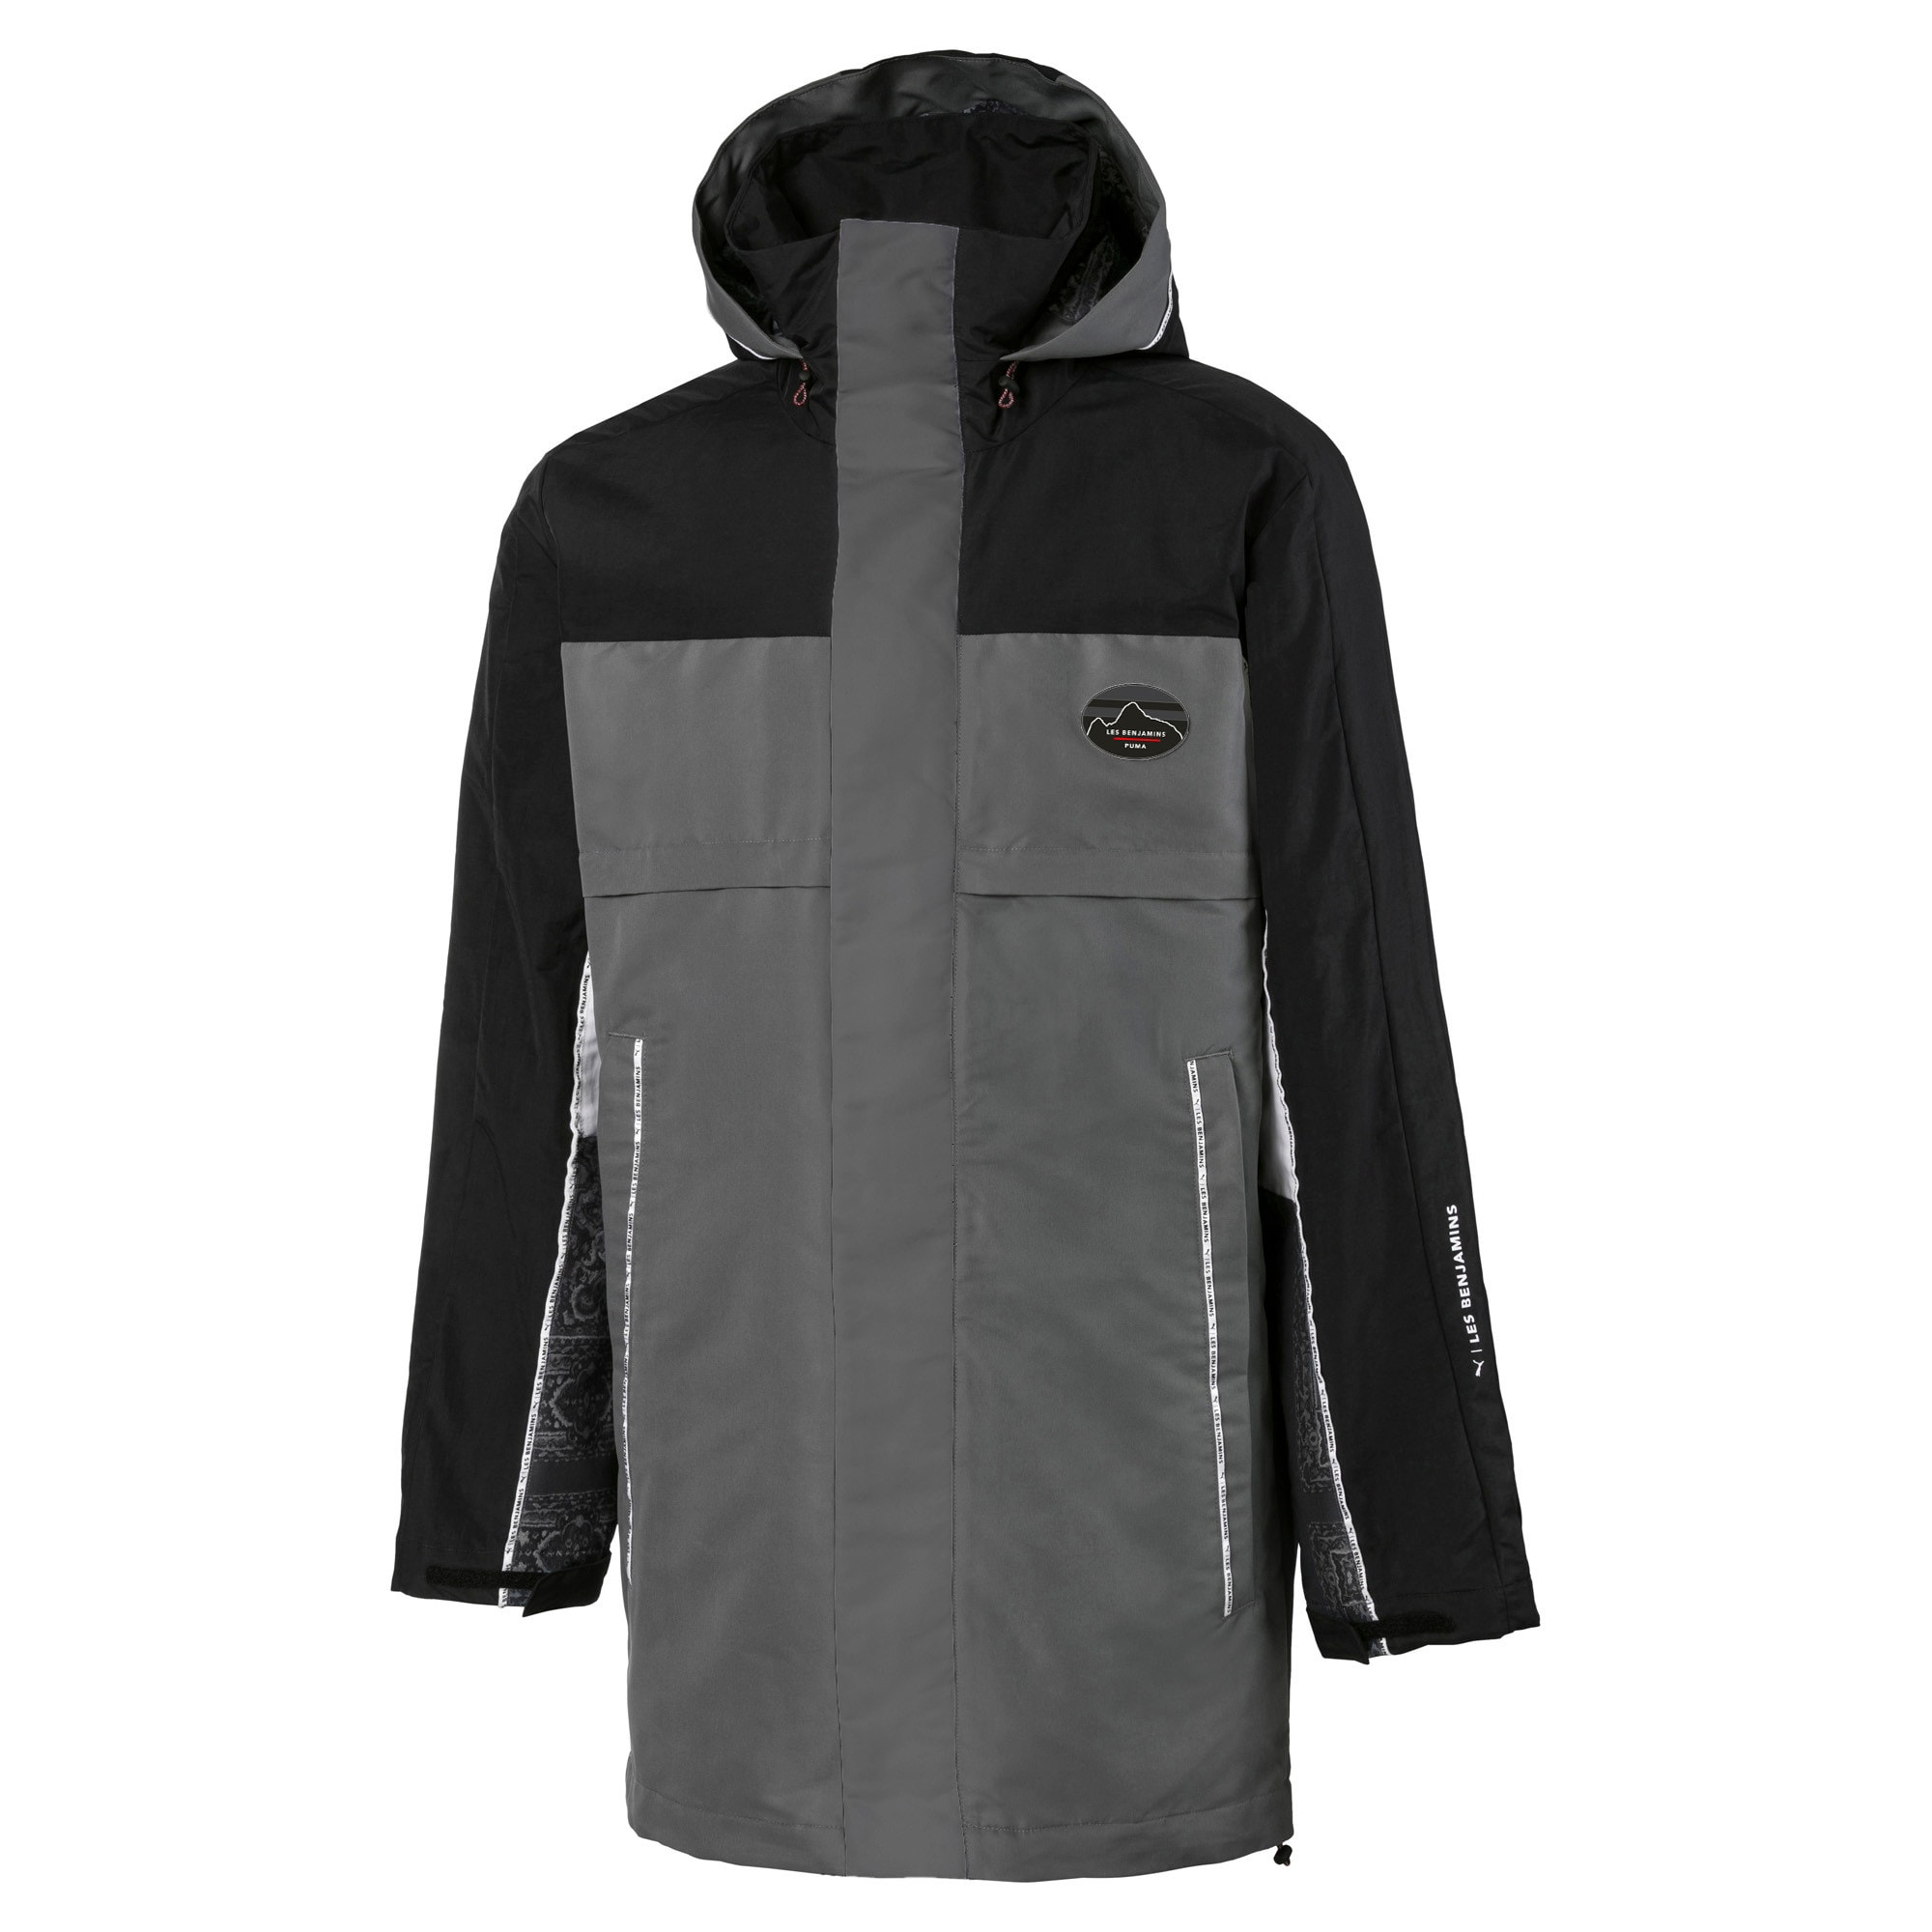 Thumbnail 1 of PUMA x LES BENJAMINS Men's Storm Jacket, Puma Black, medium